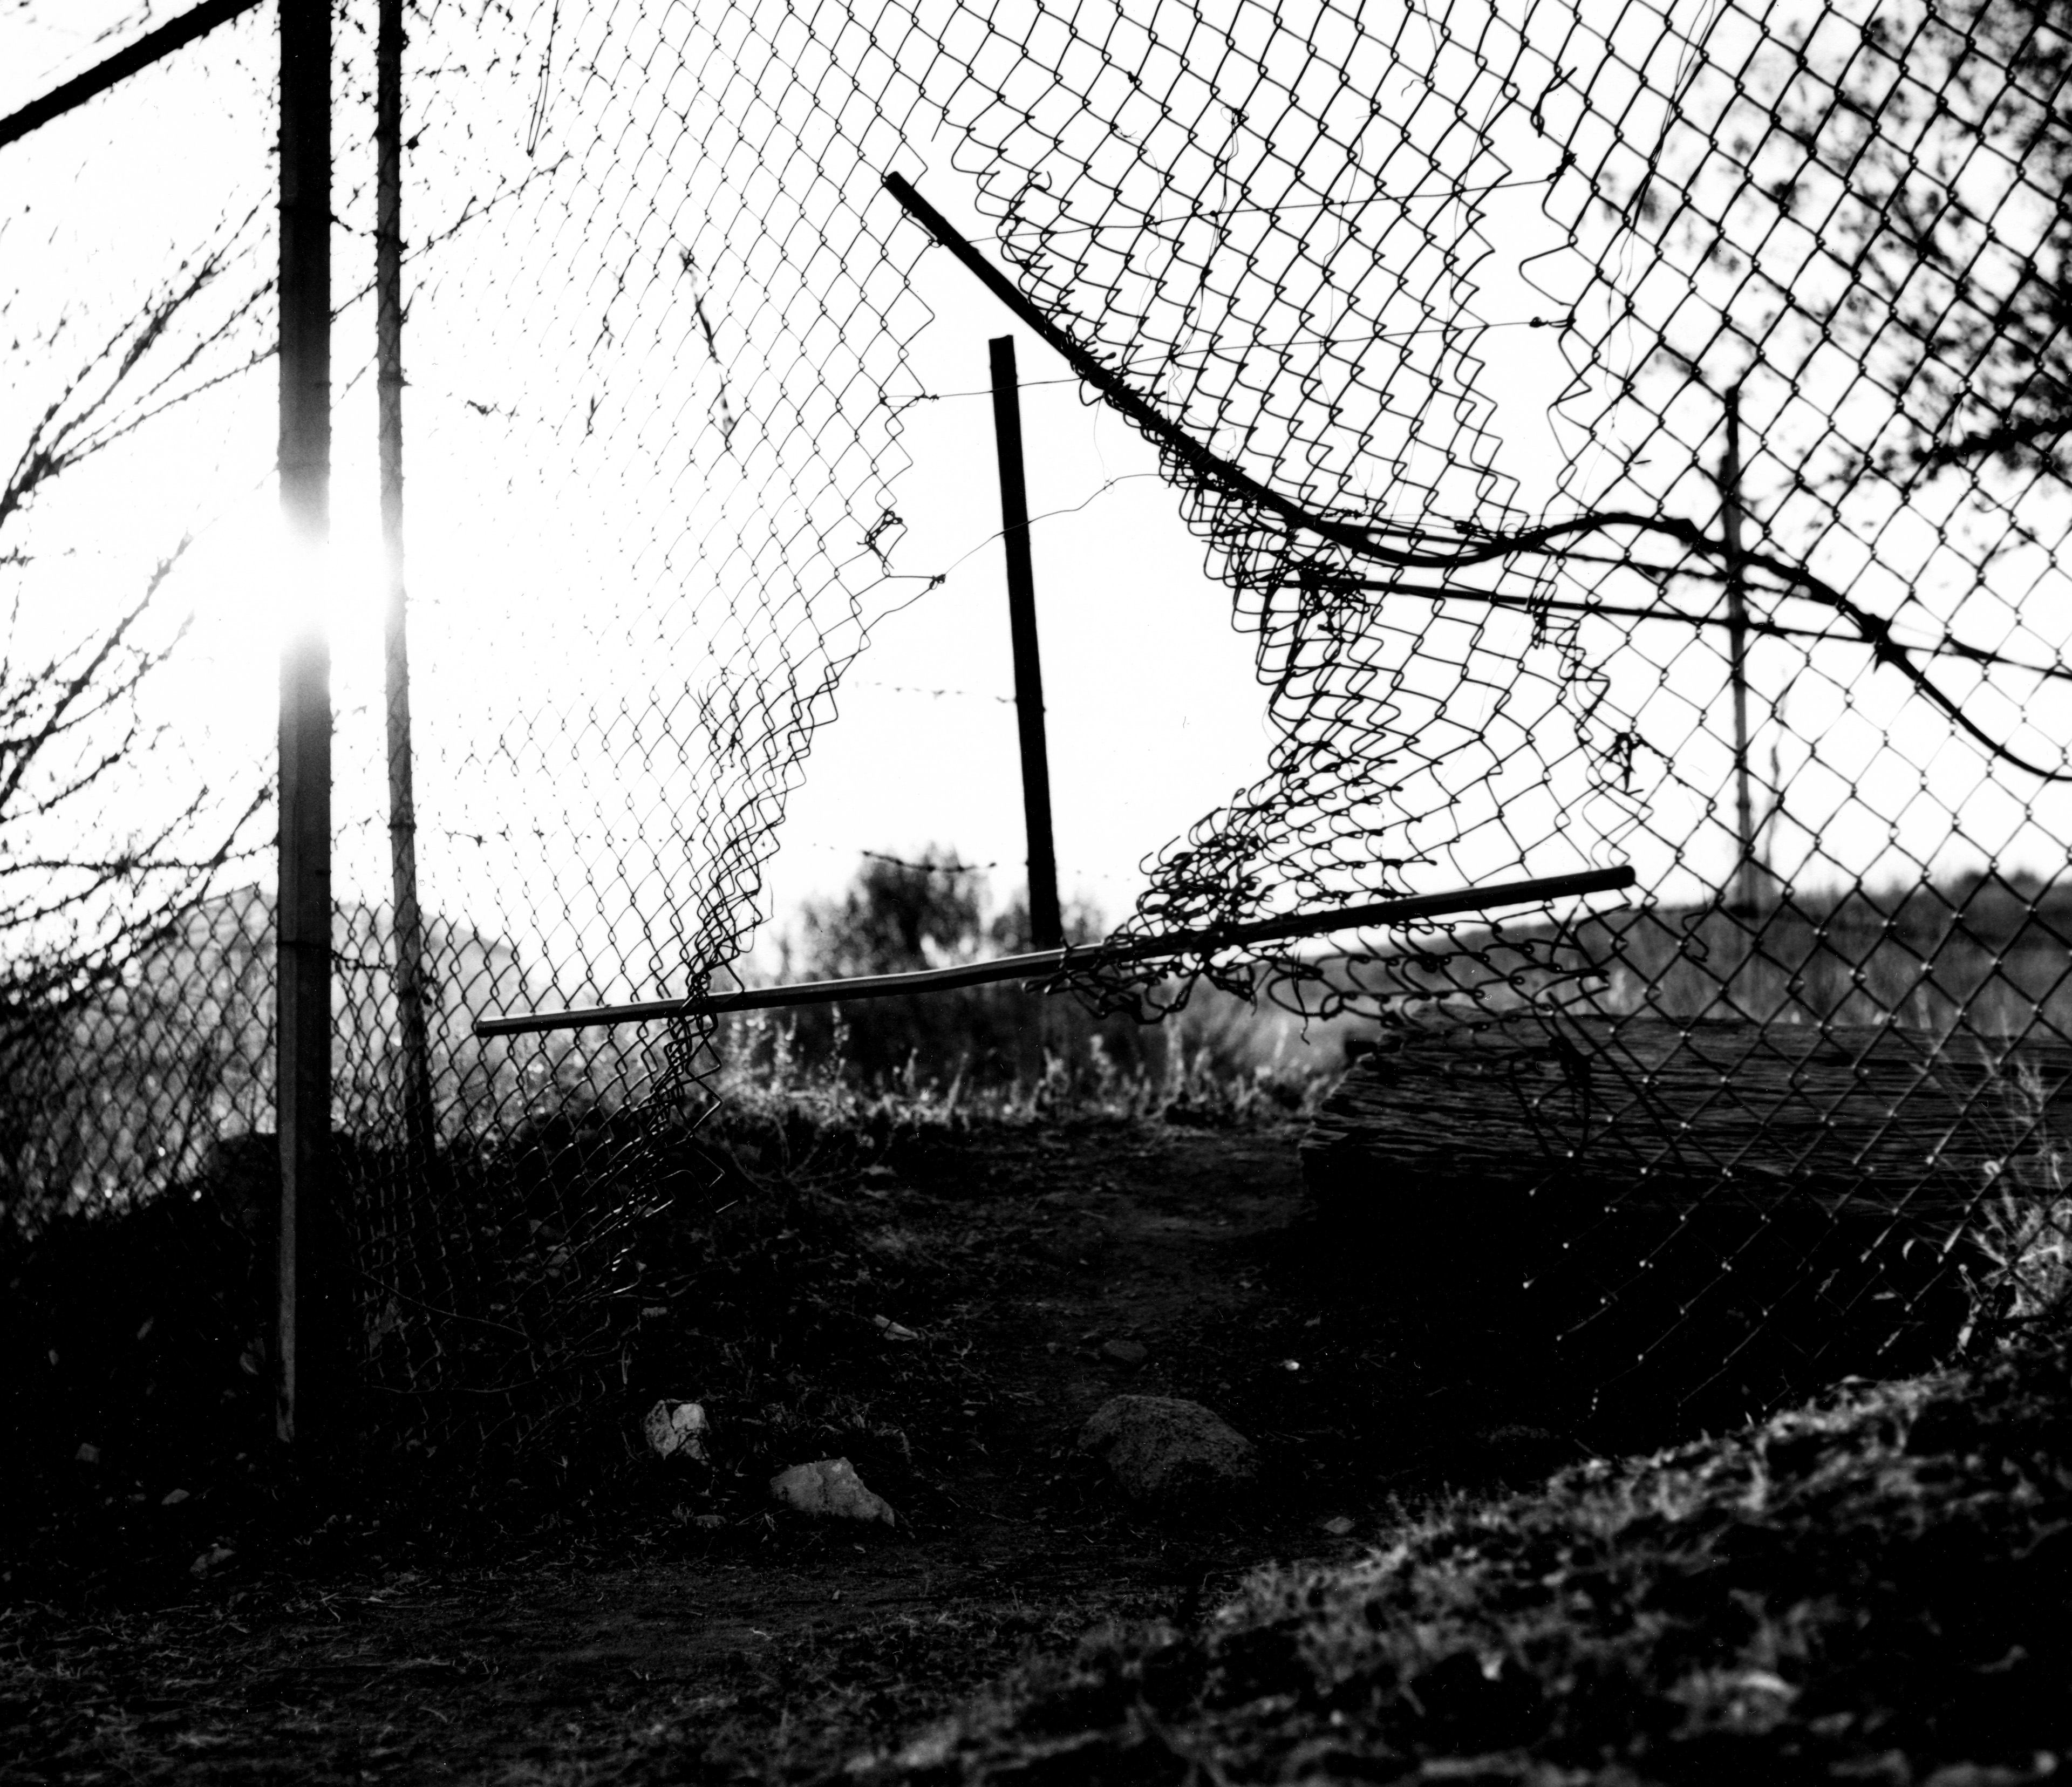 A chain link fence with a hole in a landscape